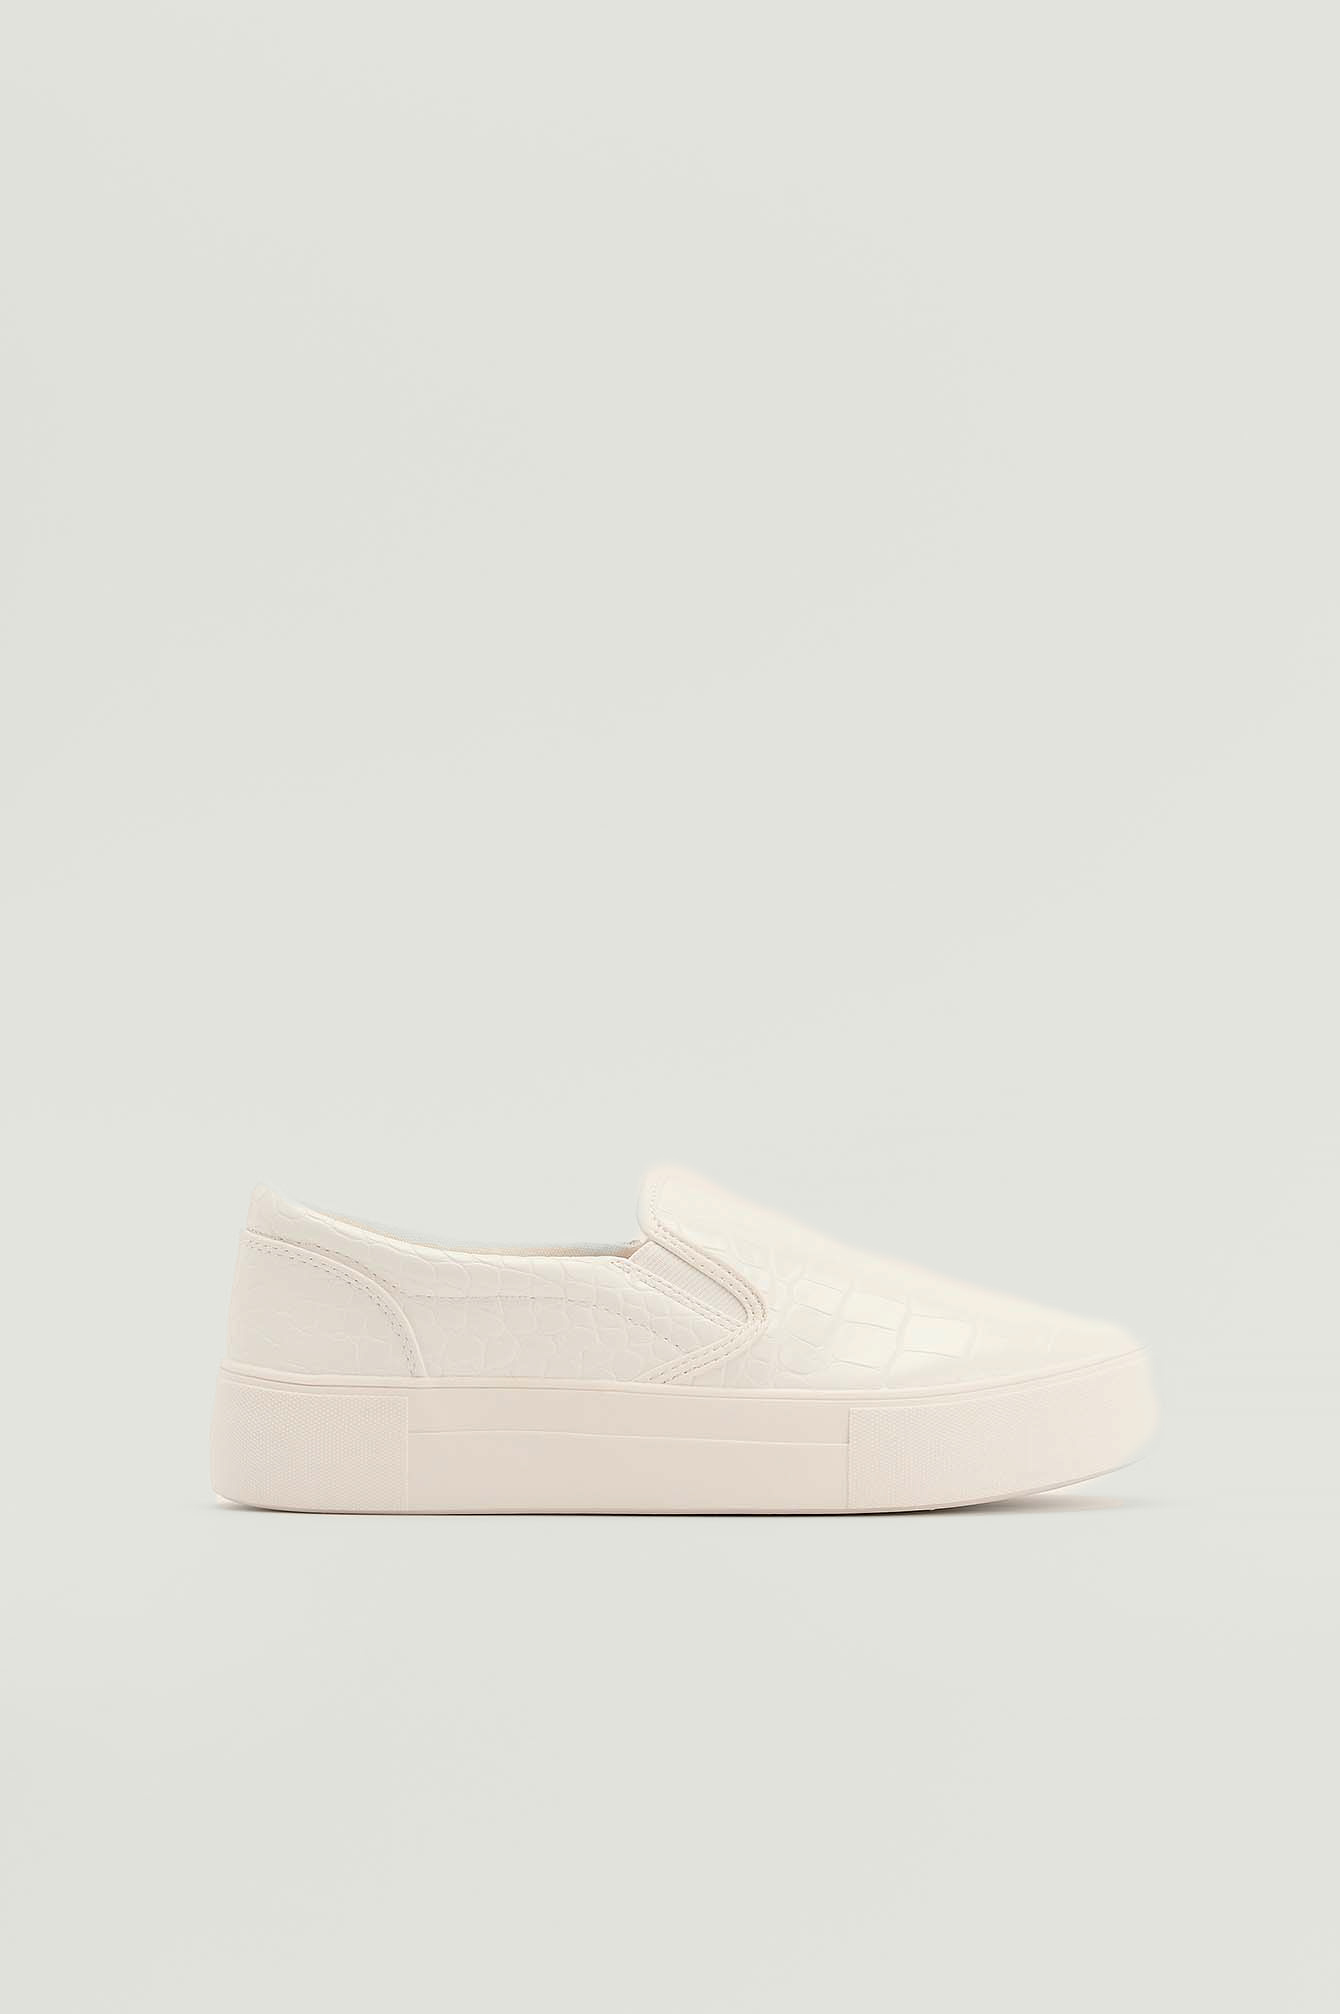 NA-KD Shoes Croc Slip In Trainers - White